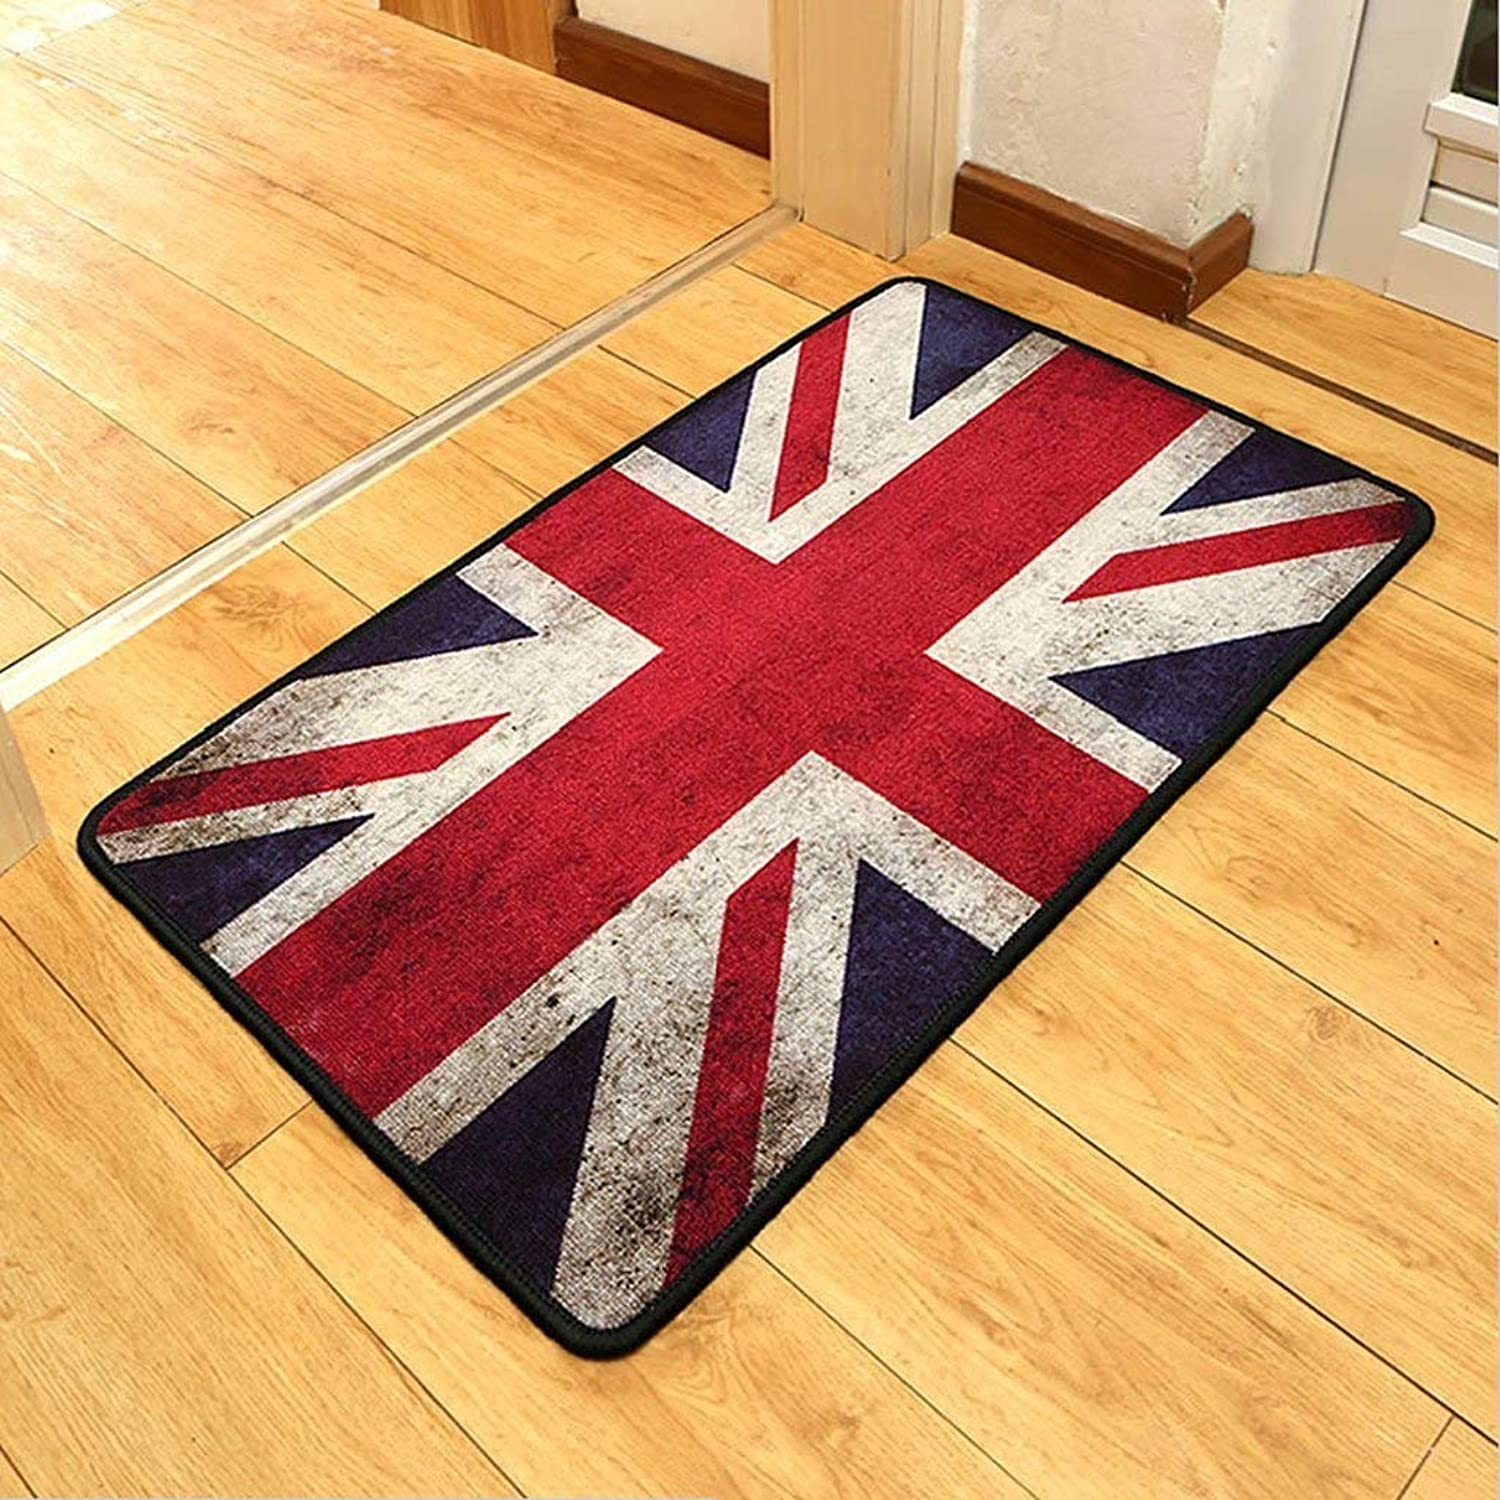 Carpet Mats England Retro Mats to Do The Old Home Entrance into The Door Anti-Skid Pad